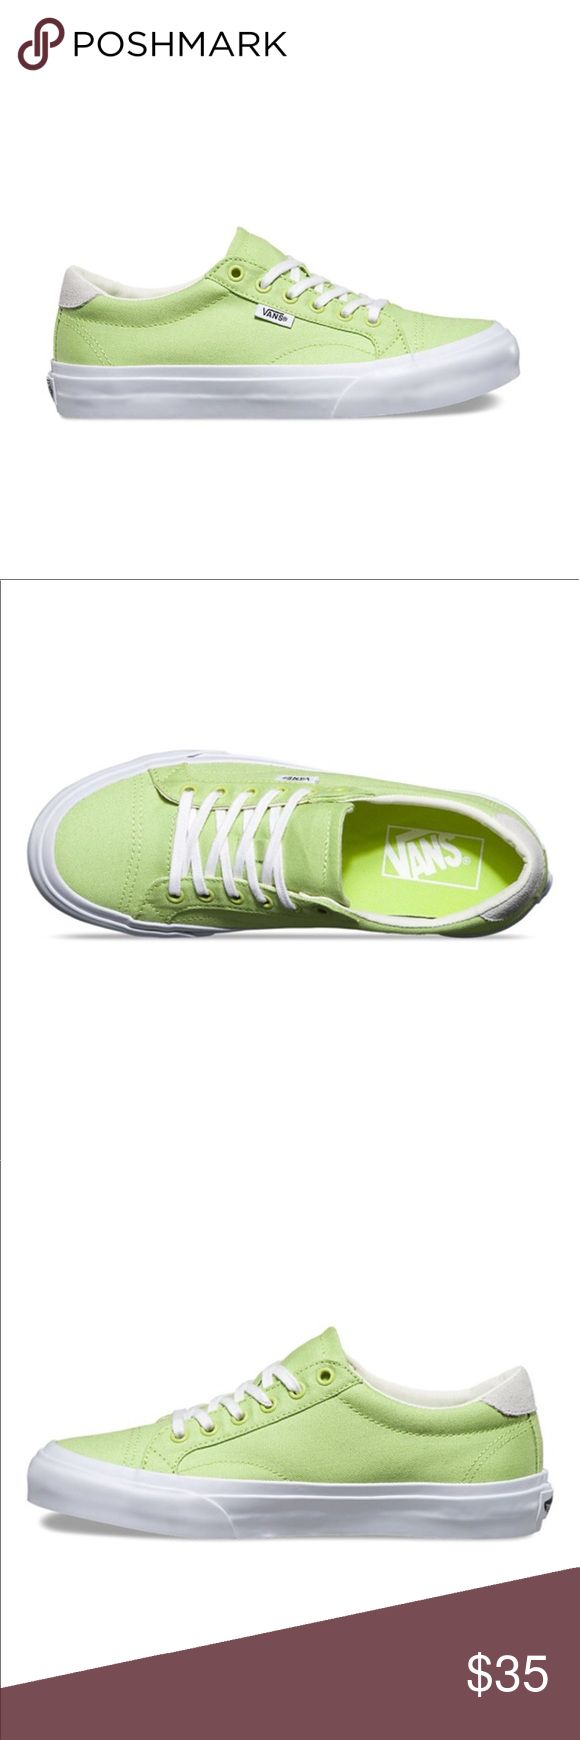 Court (canvas) green vans Canvas green glow/ blanc size: 9.0 mens / 10.5 women brand new never been used Vans Shoes Sneakers